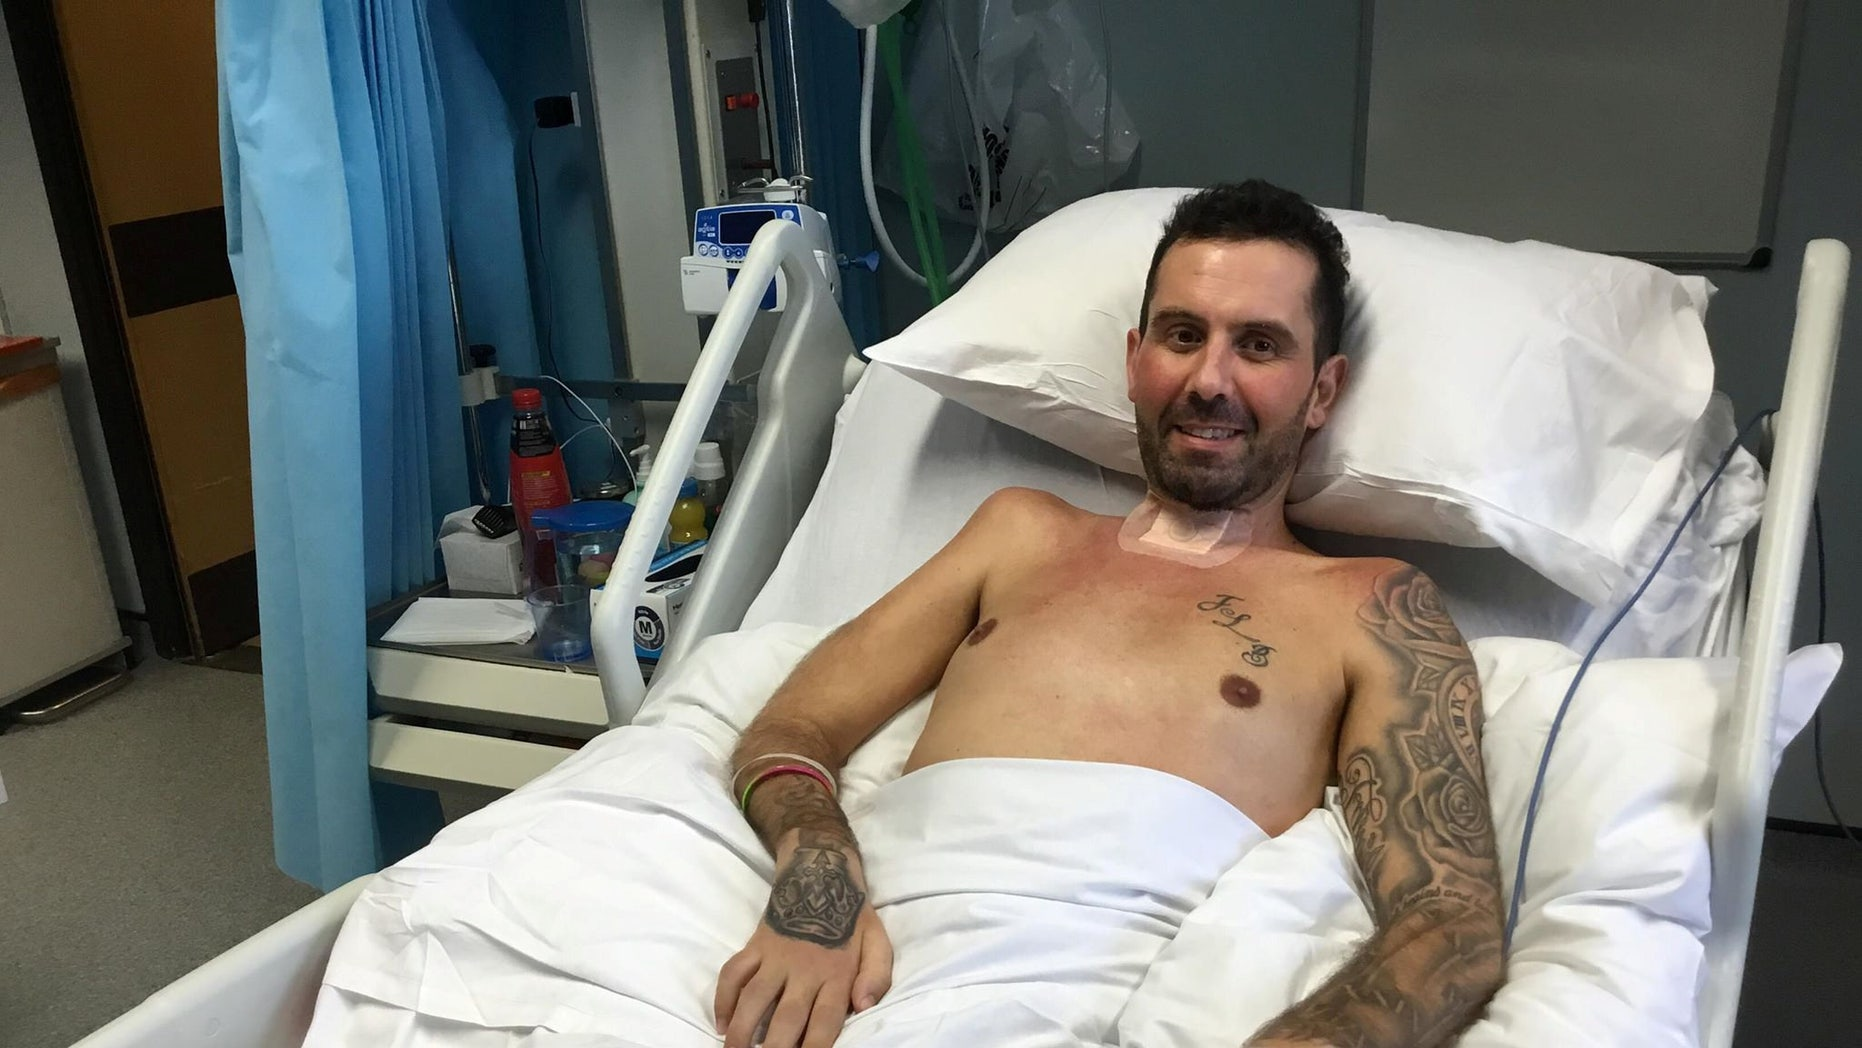 David Braham, 40, became unwell after a chicken curry meal and within a matter of days was fighting for his life in an induced coma.